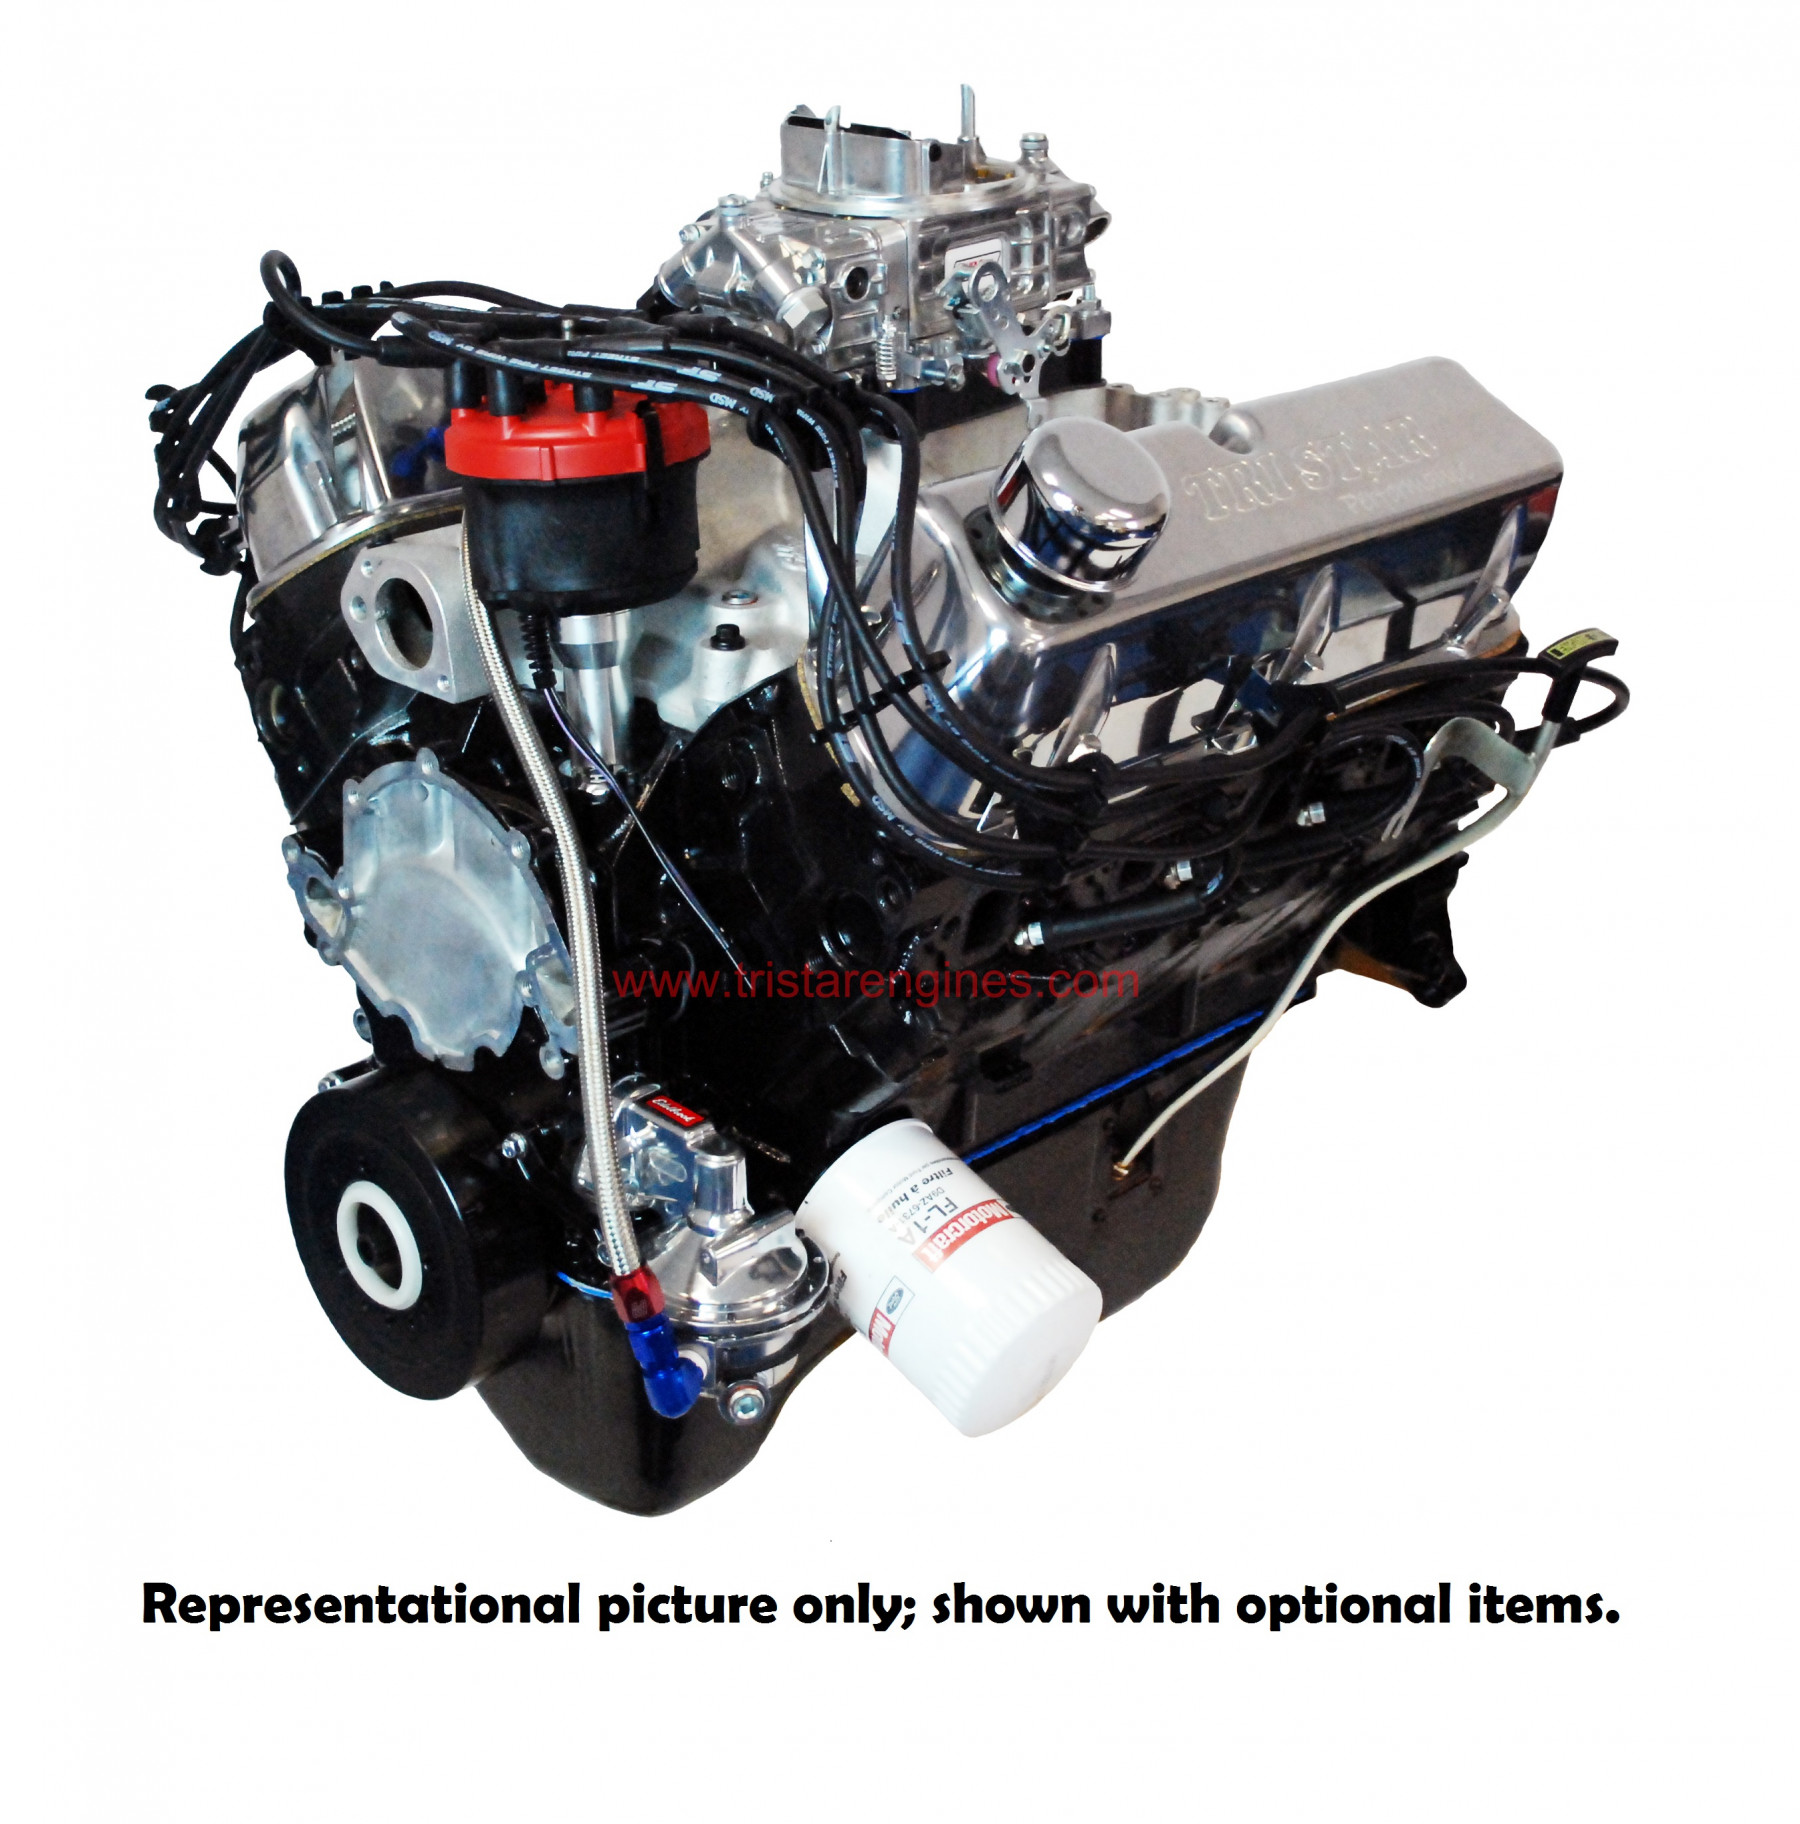 302 ford engine 302 ford crate engines for sale. Cars Review. Best American Auto & Cars Review